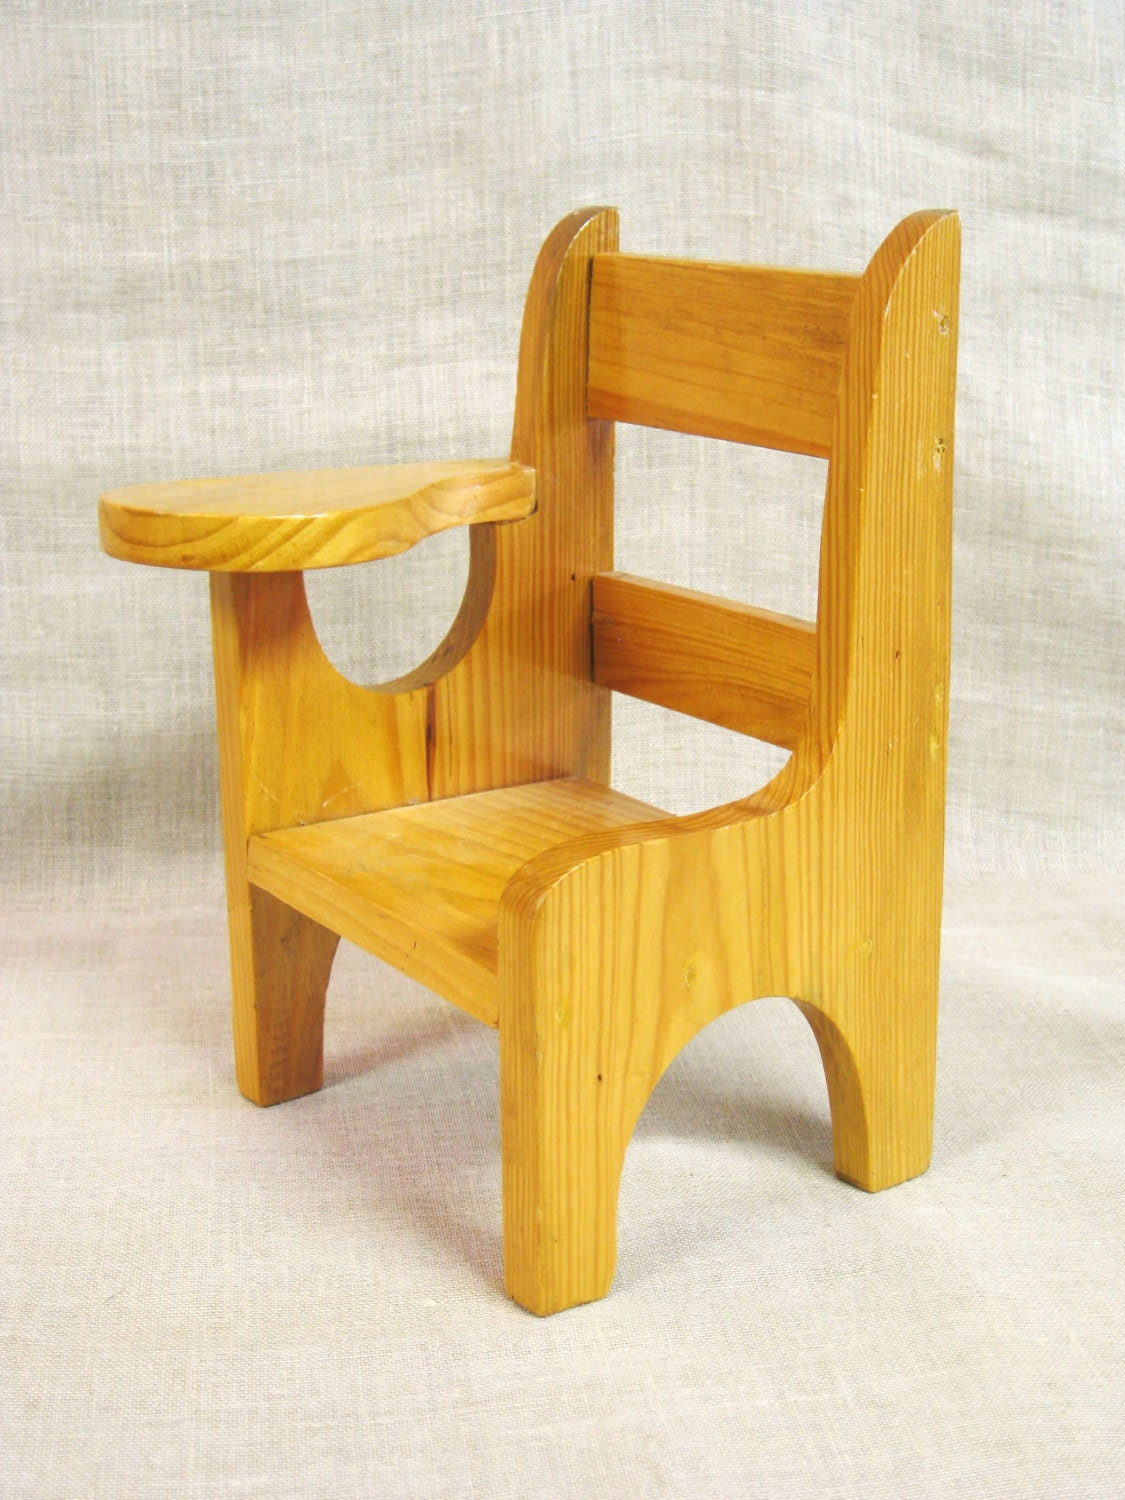 Doll Furniture School Desk Doll Chair Miniature Chair Handmade Wooden Doll Chair